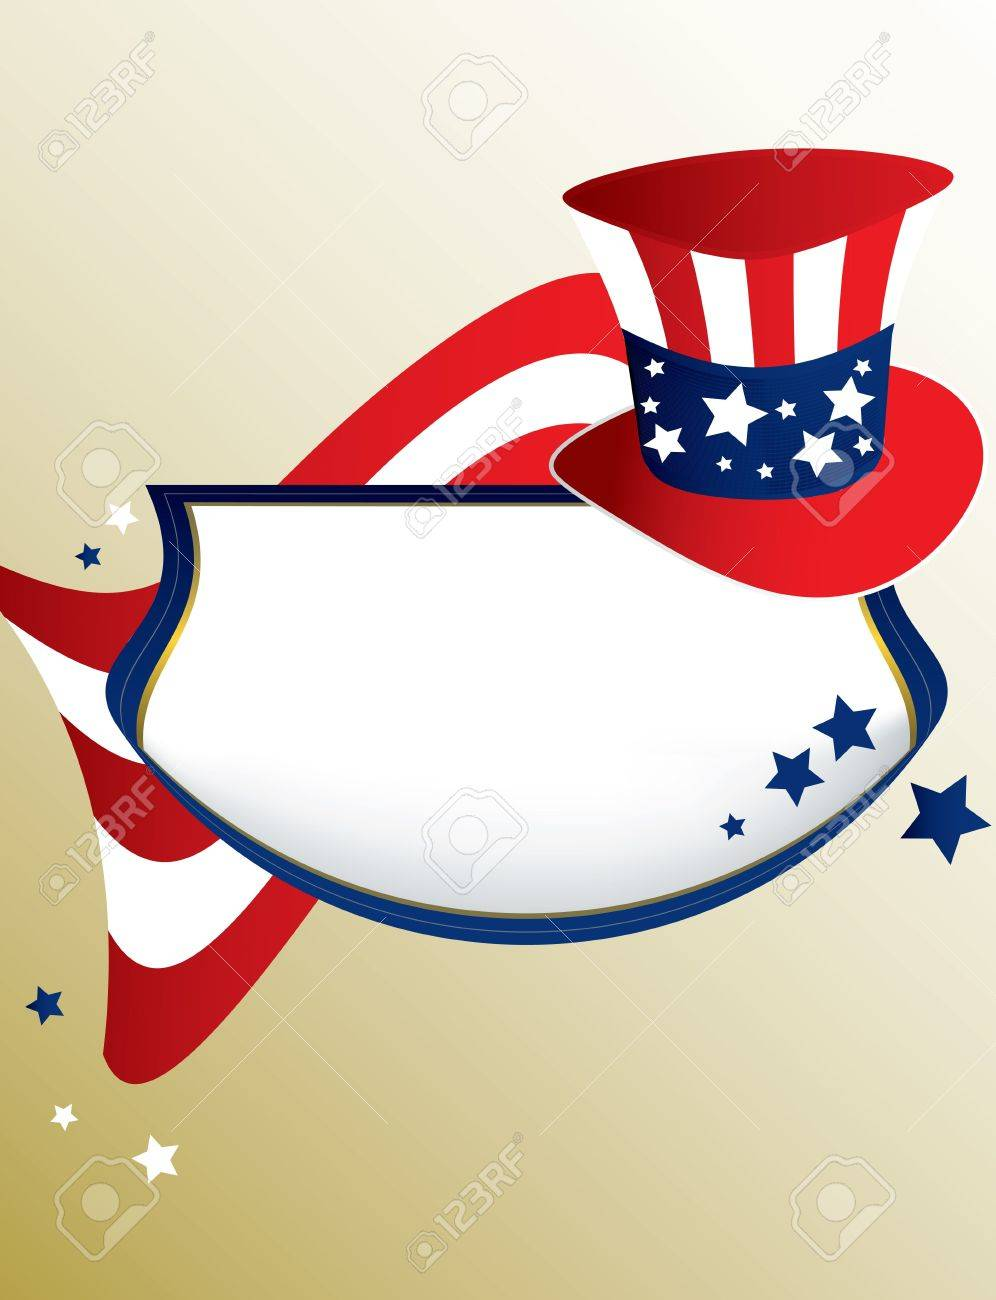 American patriotic banner on a tan background Stock Photo - 4119264